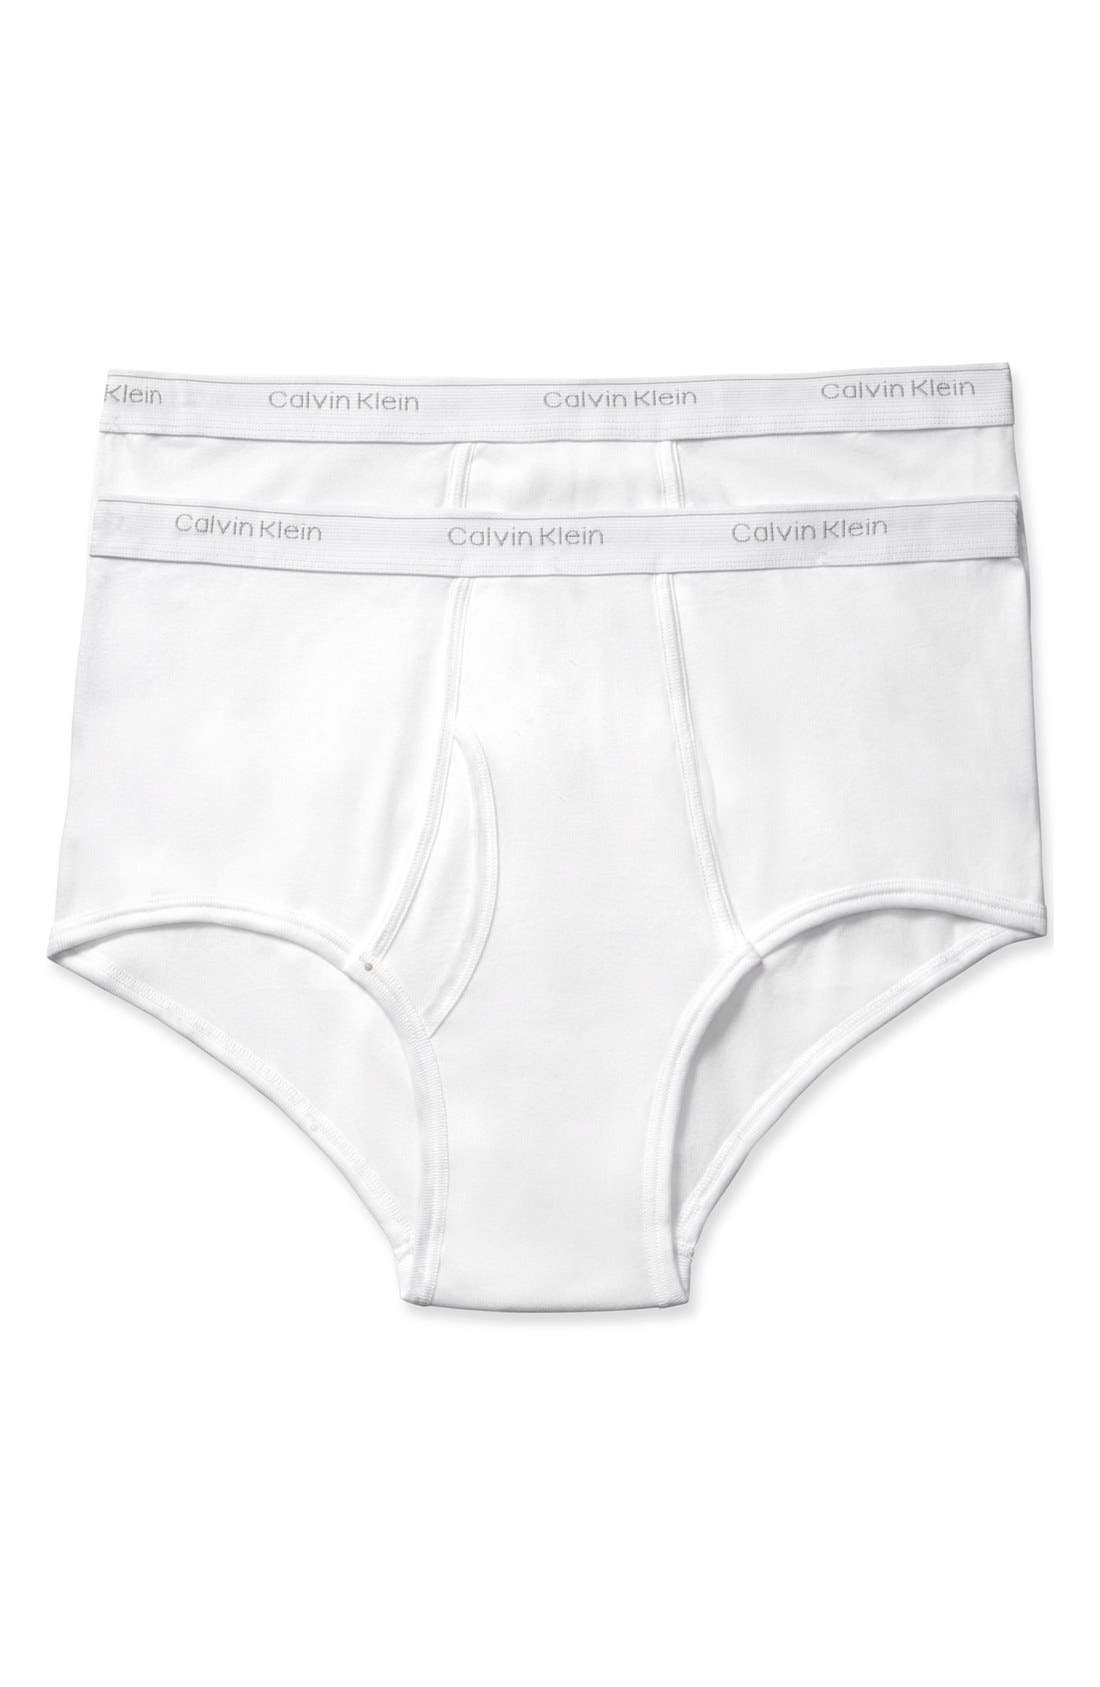 Calvin Klein 2-Pack Cotton Briefs